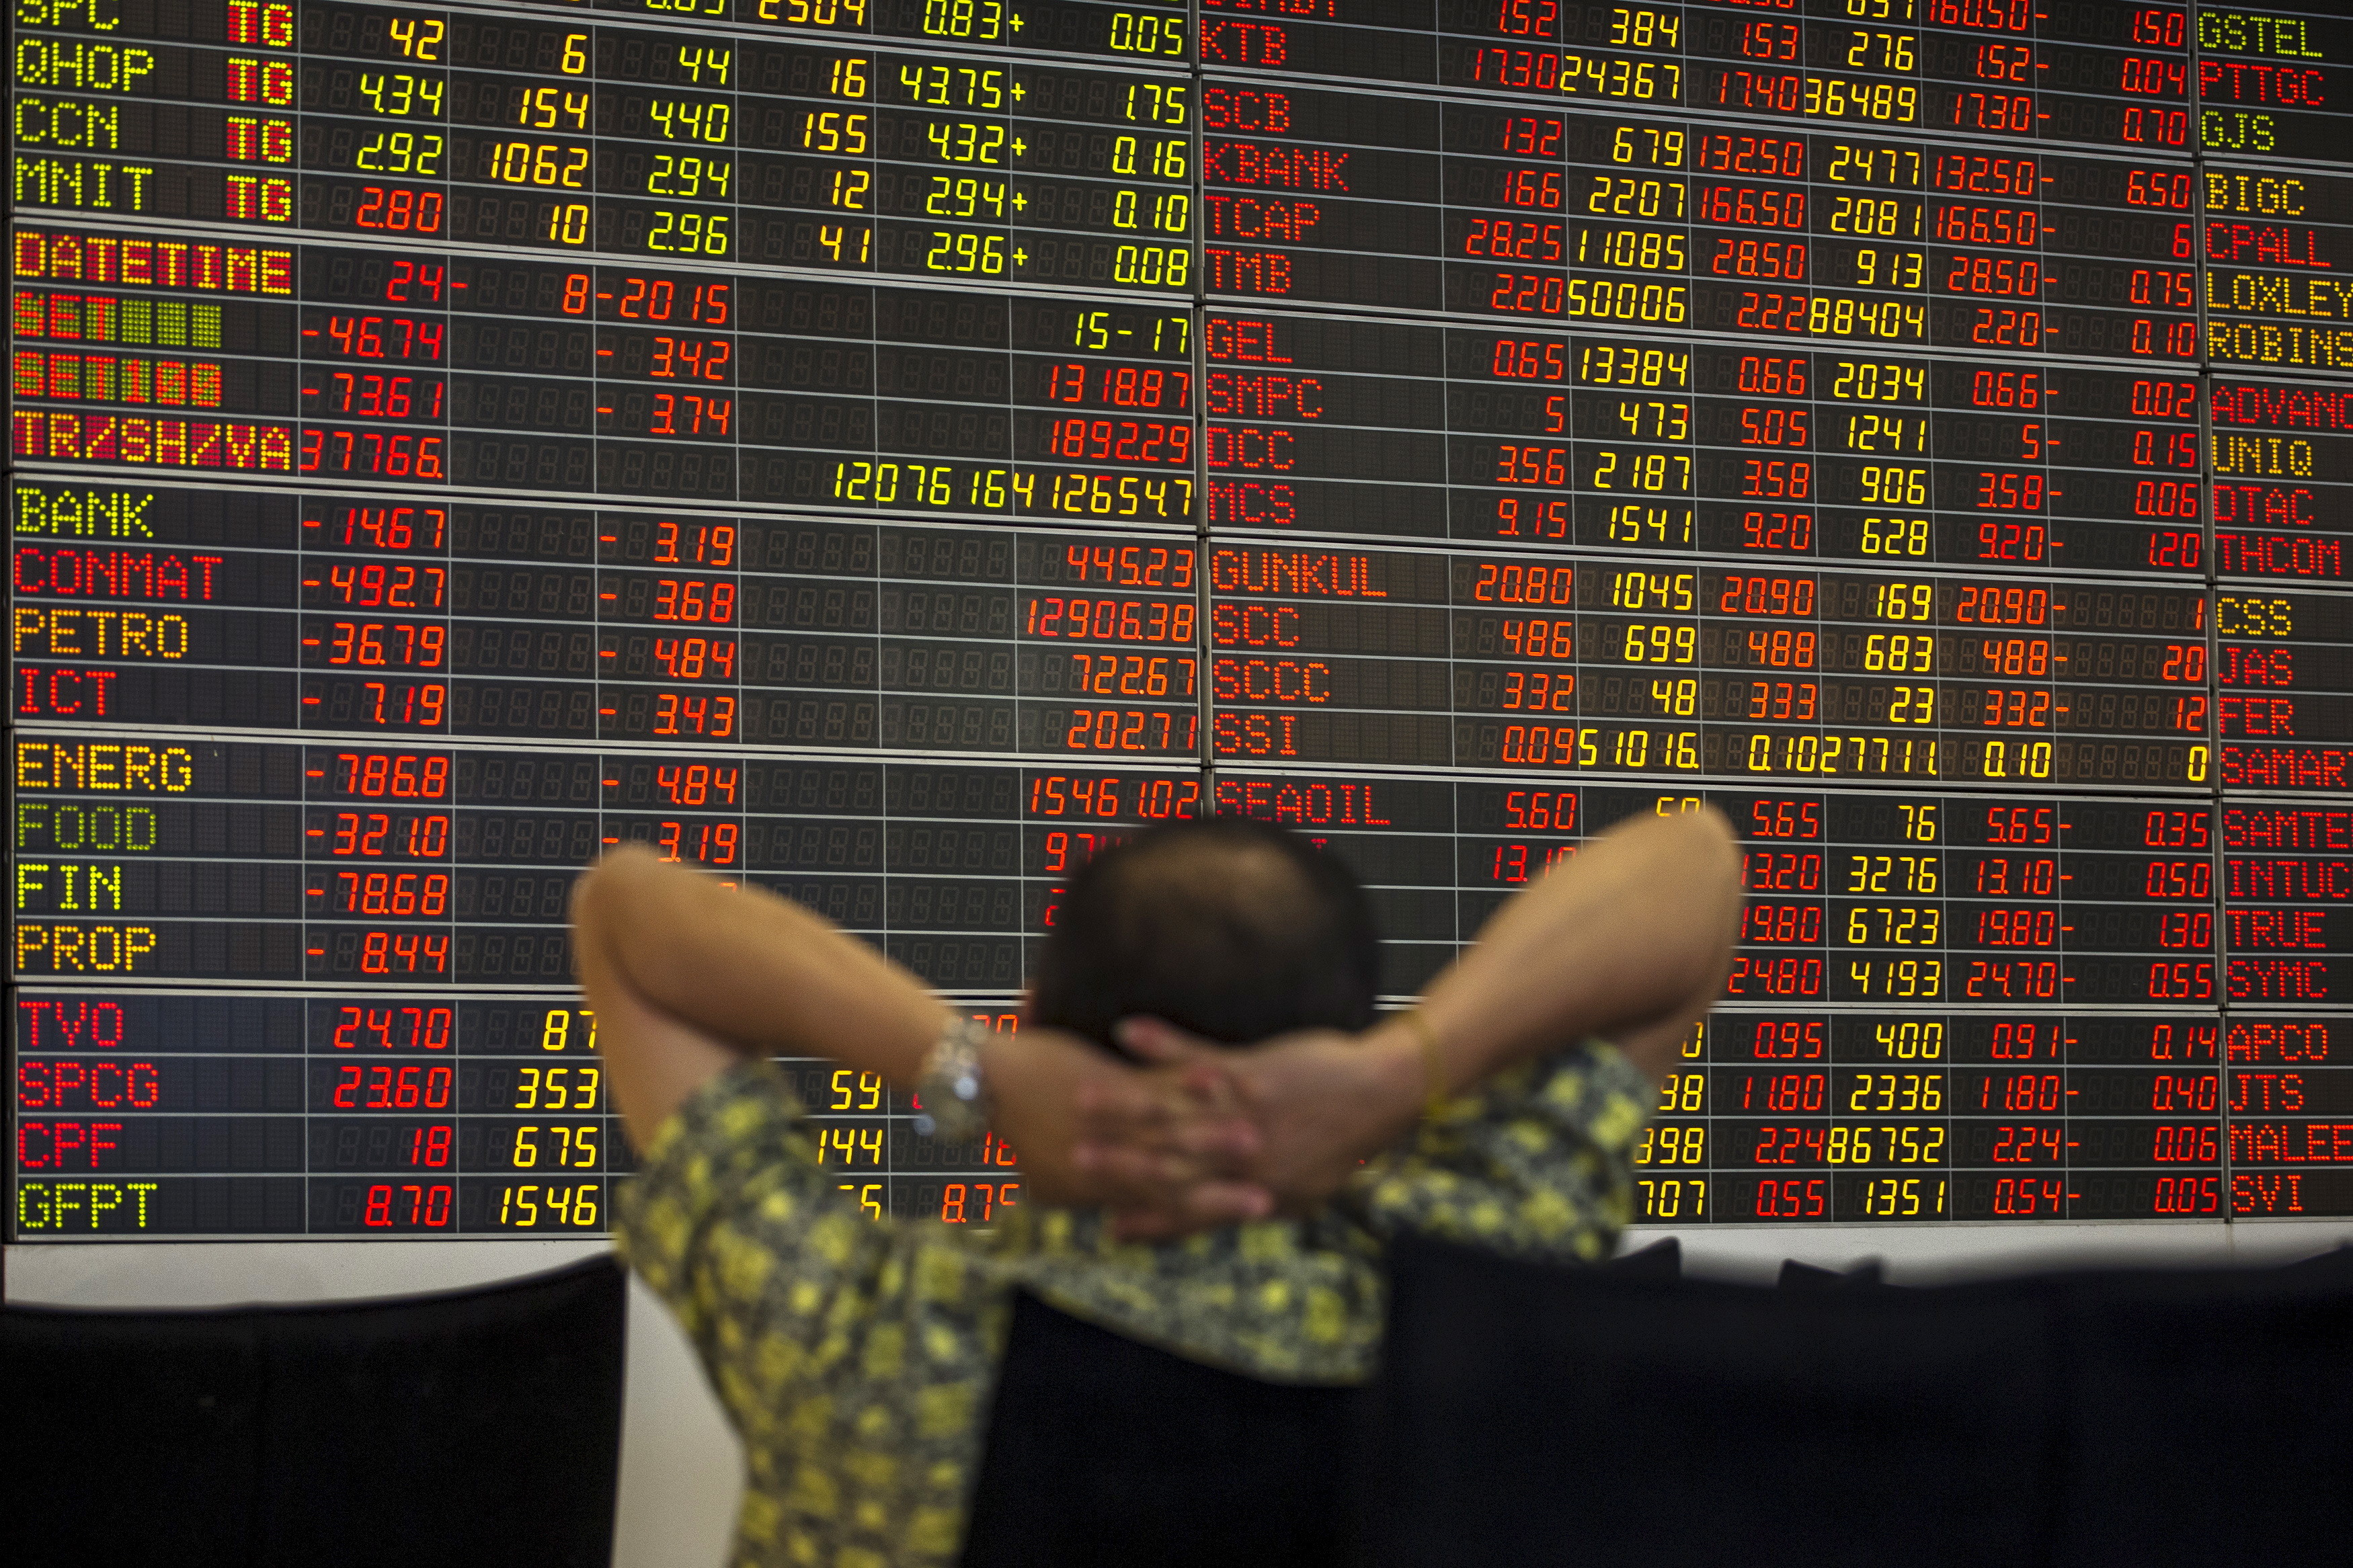 A Thai investor sits in front of an electronic board displaying live market data at a stock broker's office in central Bangkok, Thailand, August 24, 2015. Asian stocks slumped to 3-year lows on Monday as a slide in Chinese equities gathered pace, hastening an exodus from riskier assets as fears of a China-led global economic slowdown churned through markets. REUTERS/Athit Perawongmetha  - GF10000181016